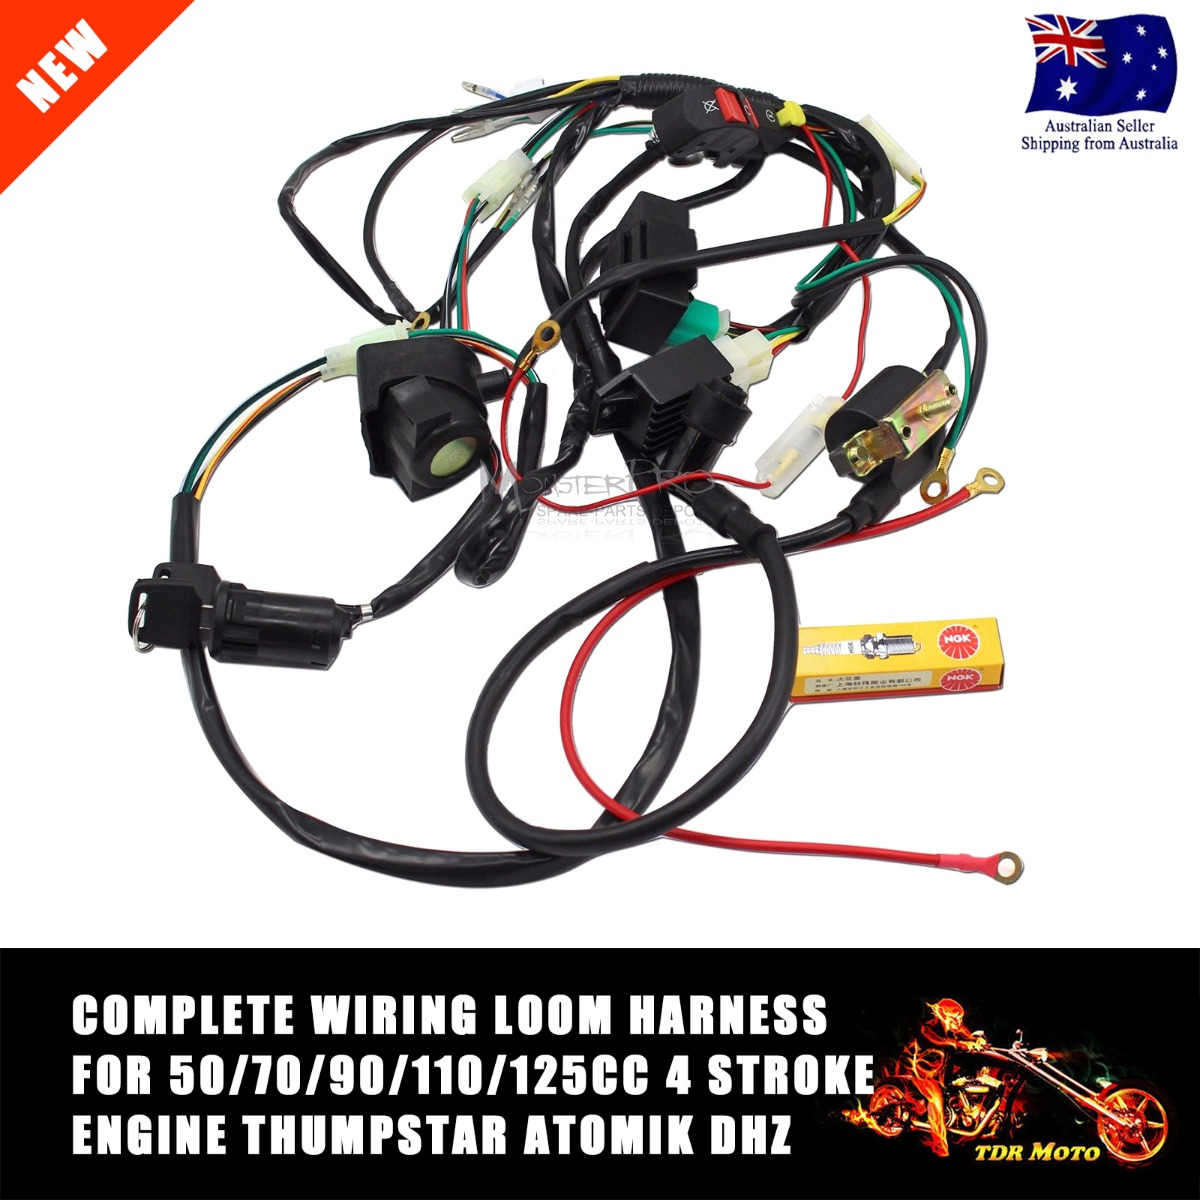 pit bike wiring diagram electric start diagramming subjects and predicates worksheets full harness loom 50 70 90 110 125cc dirt